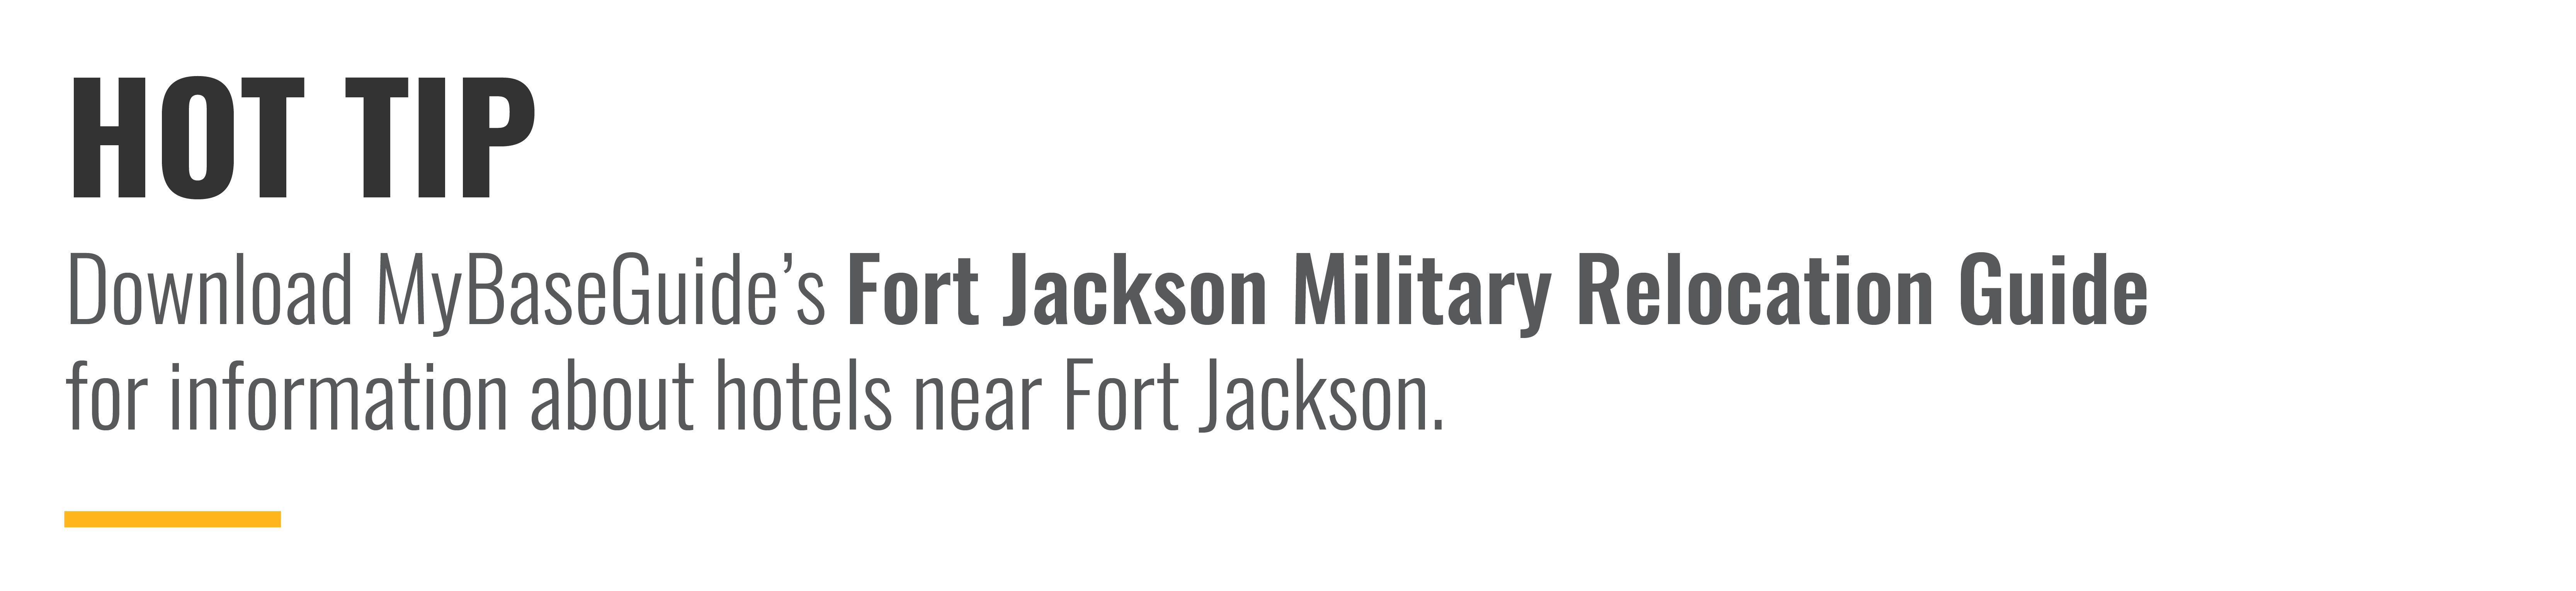 Download MyBaseGuide's Fort Jackson Military Relocation Guide for information about hotels near Fort Jackson.